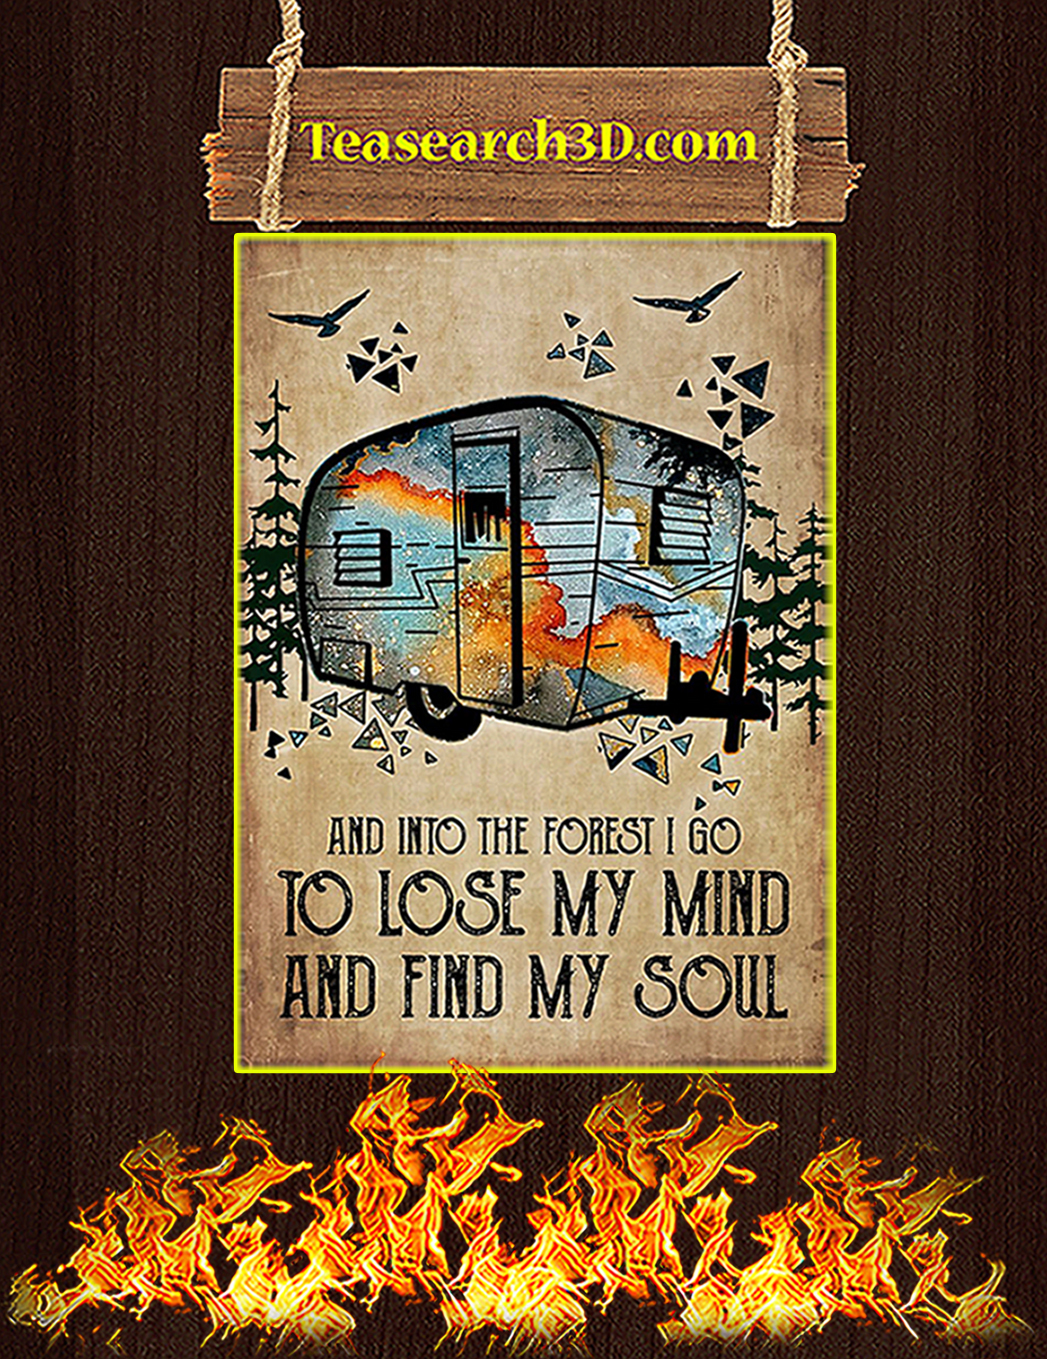 Camping and into the forest go to lose poster A1